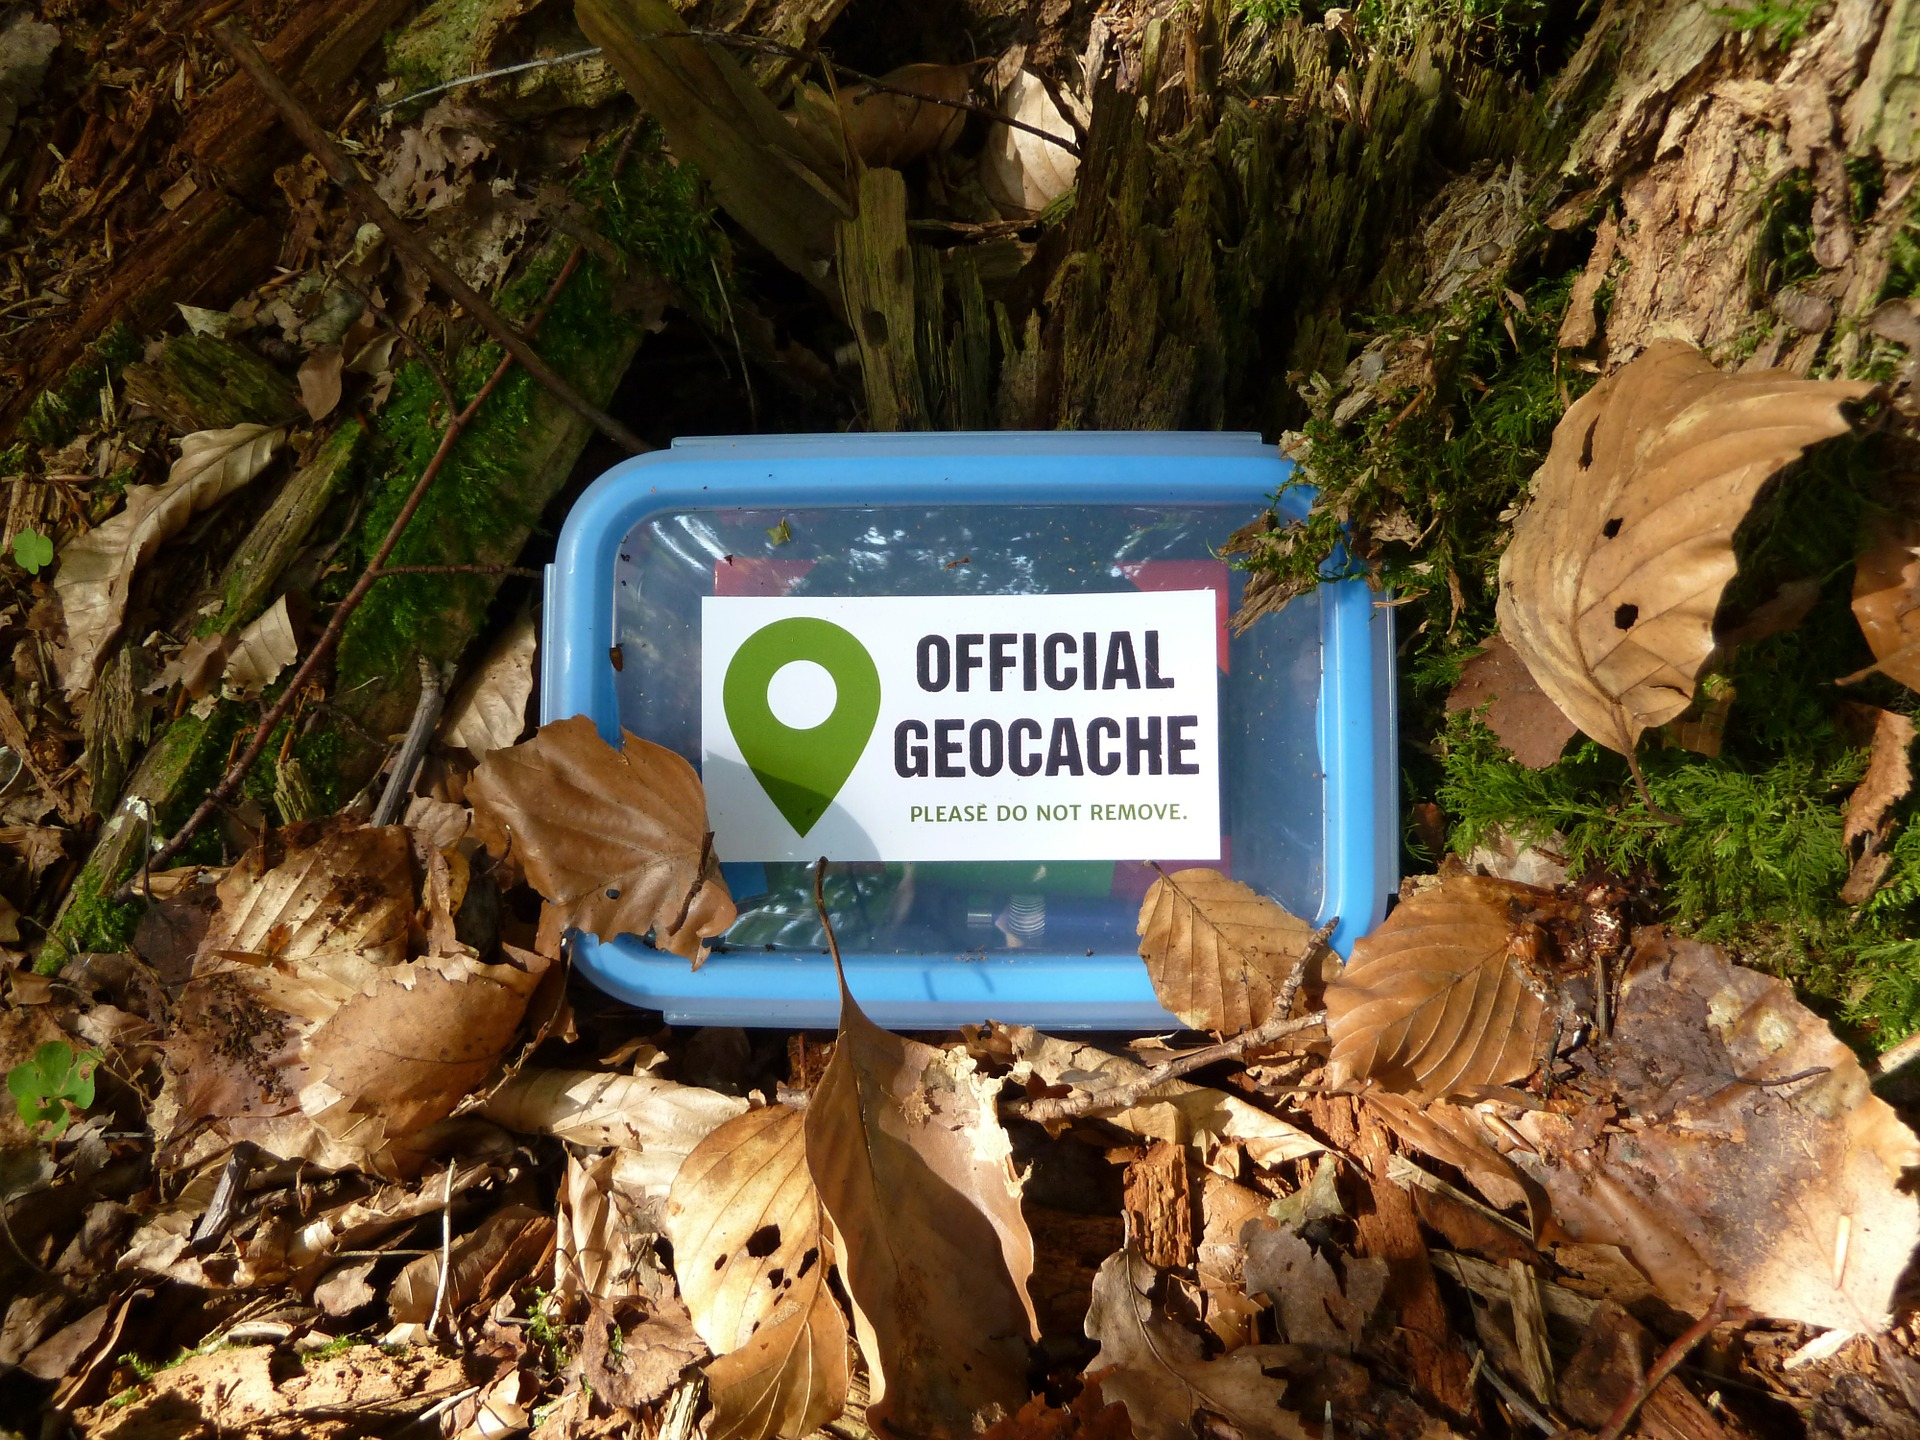 Five Reasons Geocaching Is Fun For Families